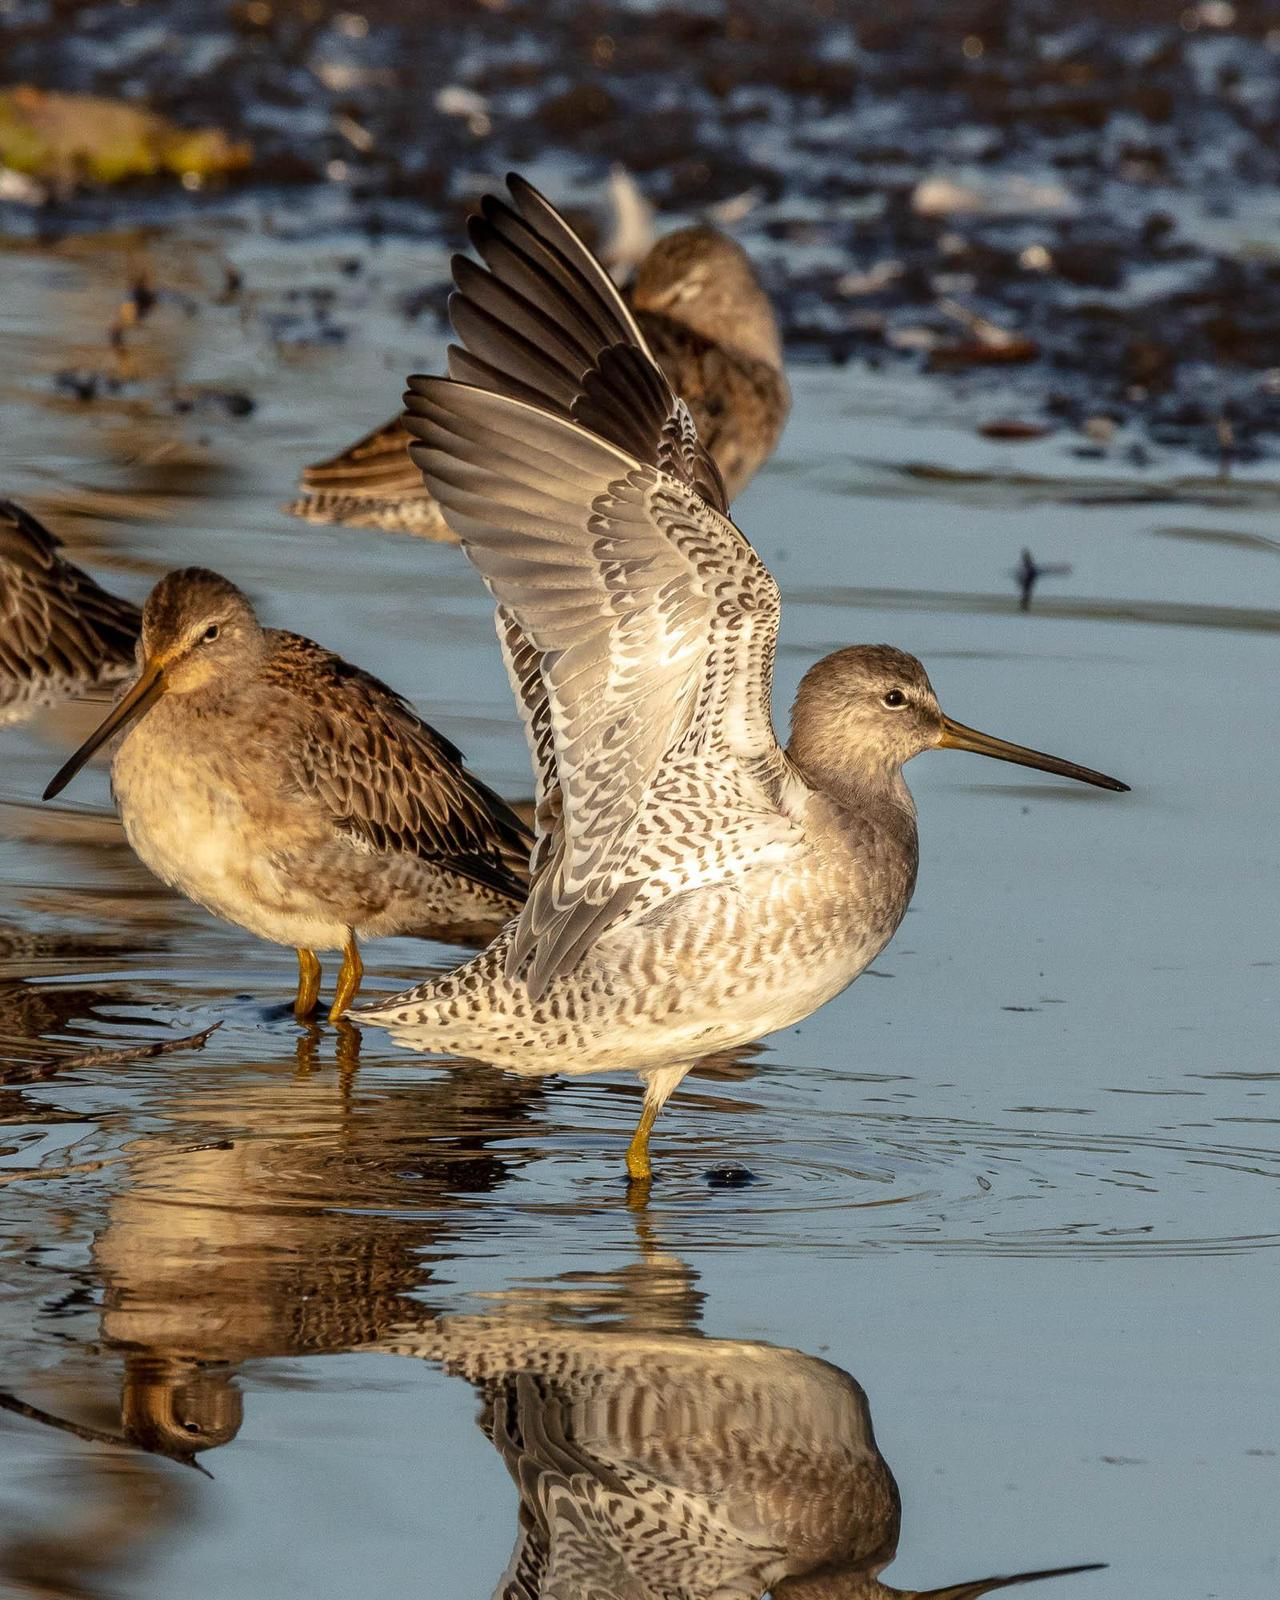 Long-billed Dowitcher Photo by Denis Rivard